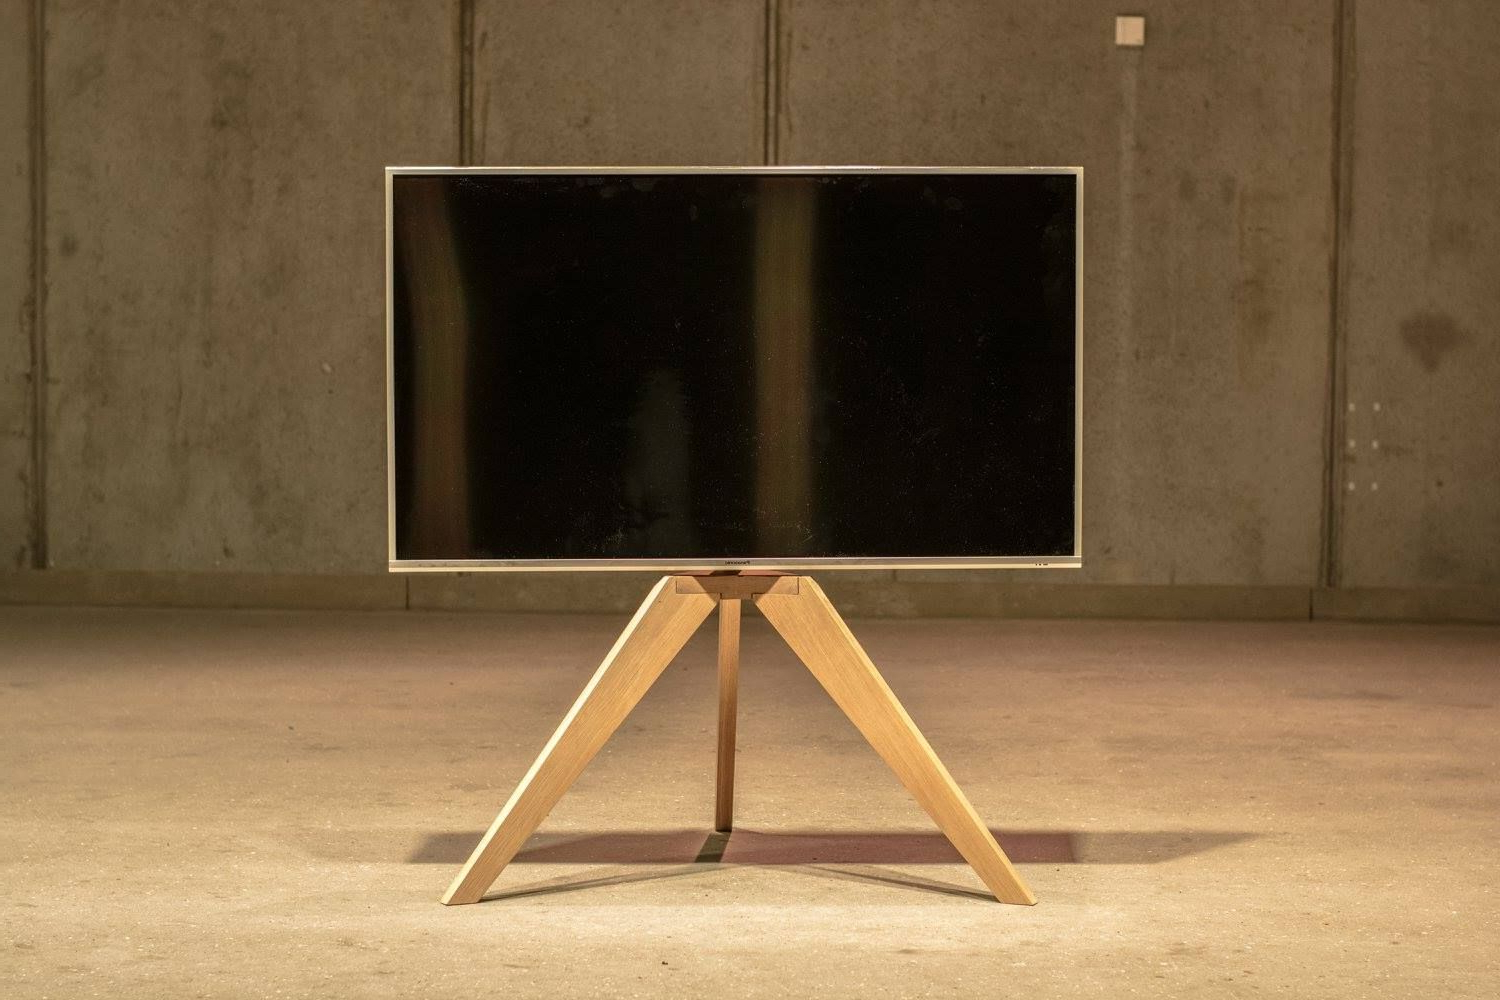 Best Buy Tv Mounts Stands 65 Tripod Wood Dual Monitor Floor Stand With Current Wood Tv Floor Stands (Gallery 8 of 20)